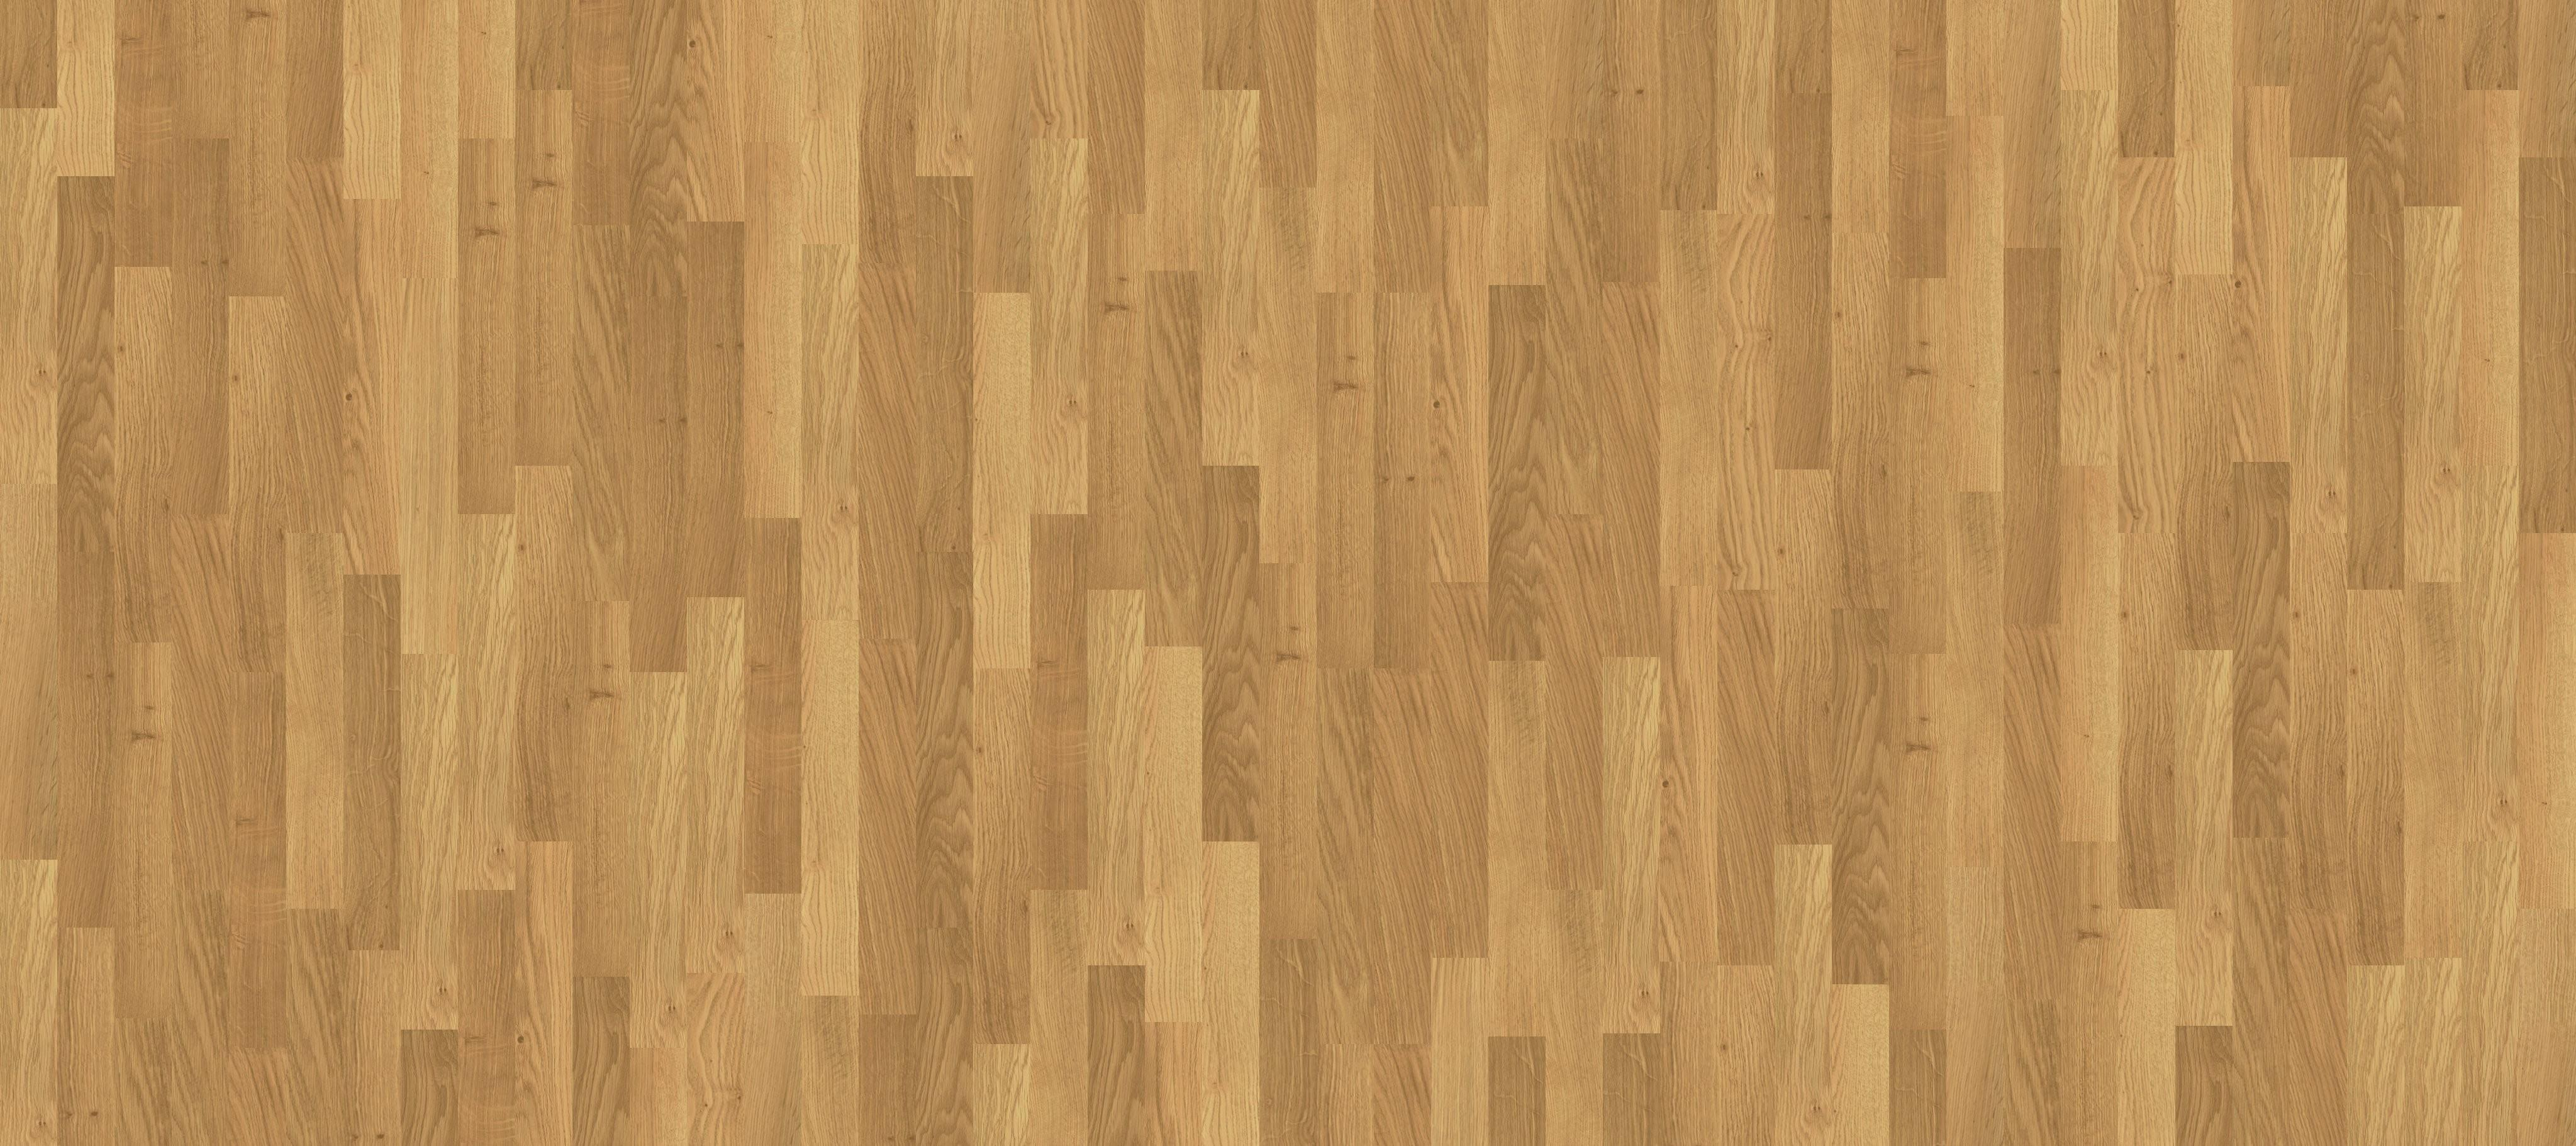 Clean Laminate Flooring Great Your